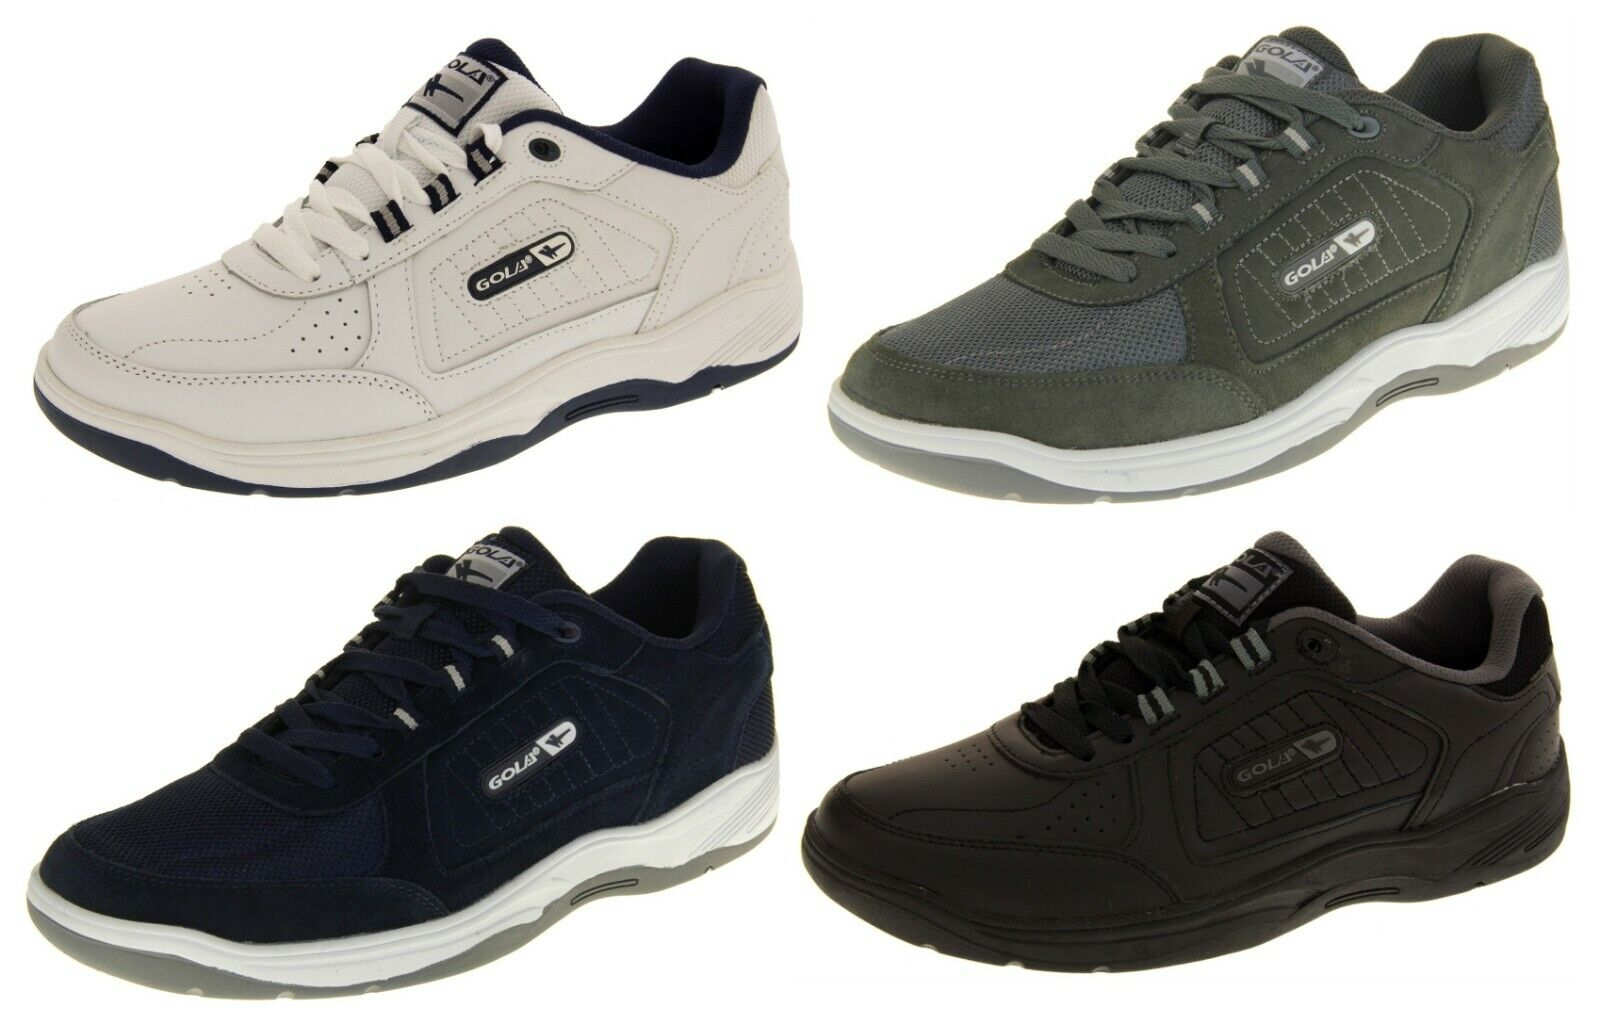 gola mens wide fit trainers